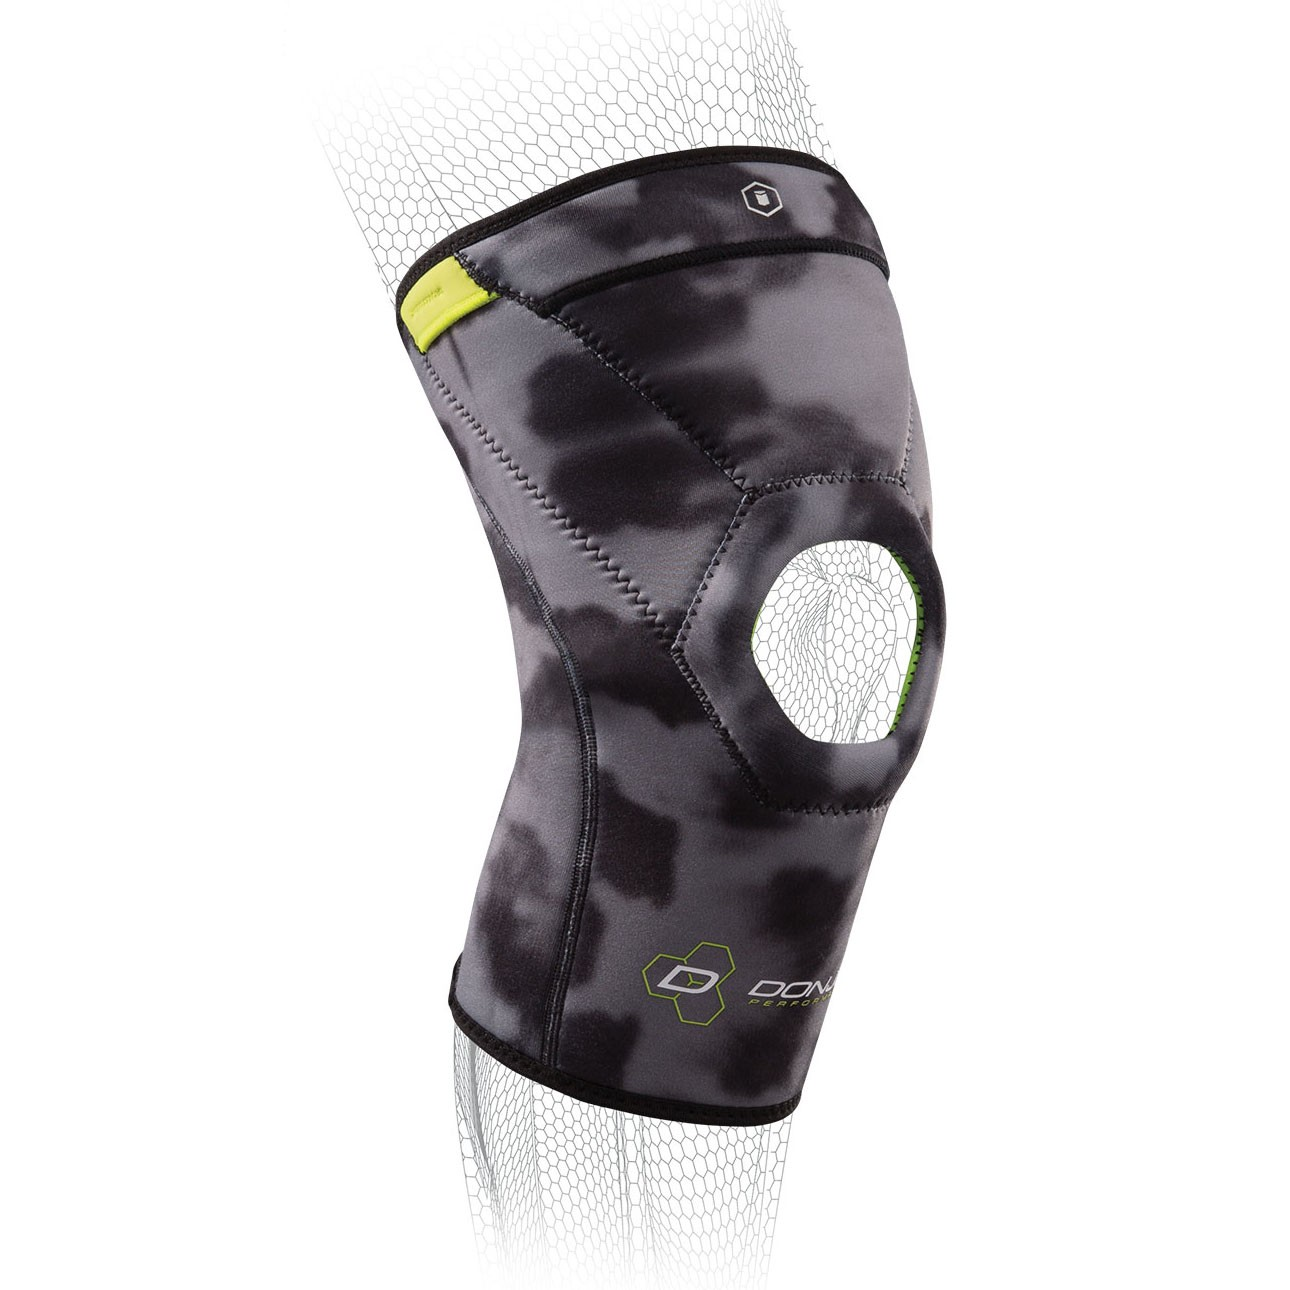 AnaForm 4MM Open Patella Knee Sleeve - Hex - Camo